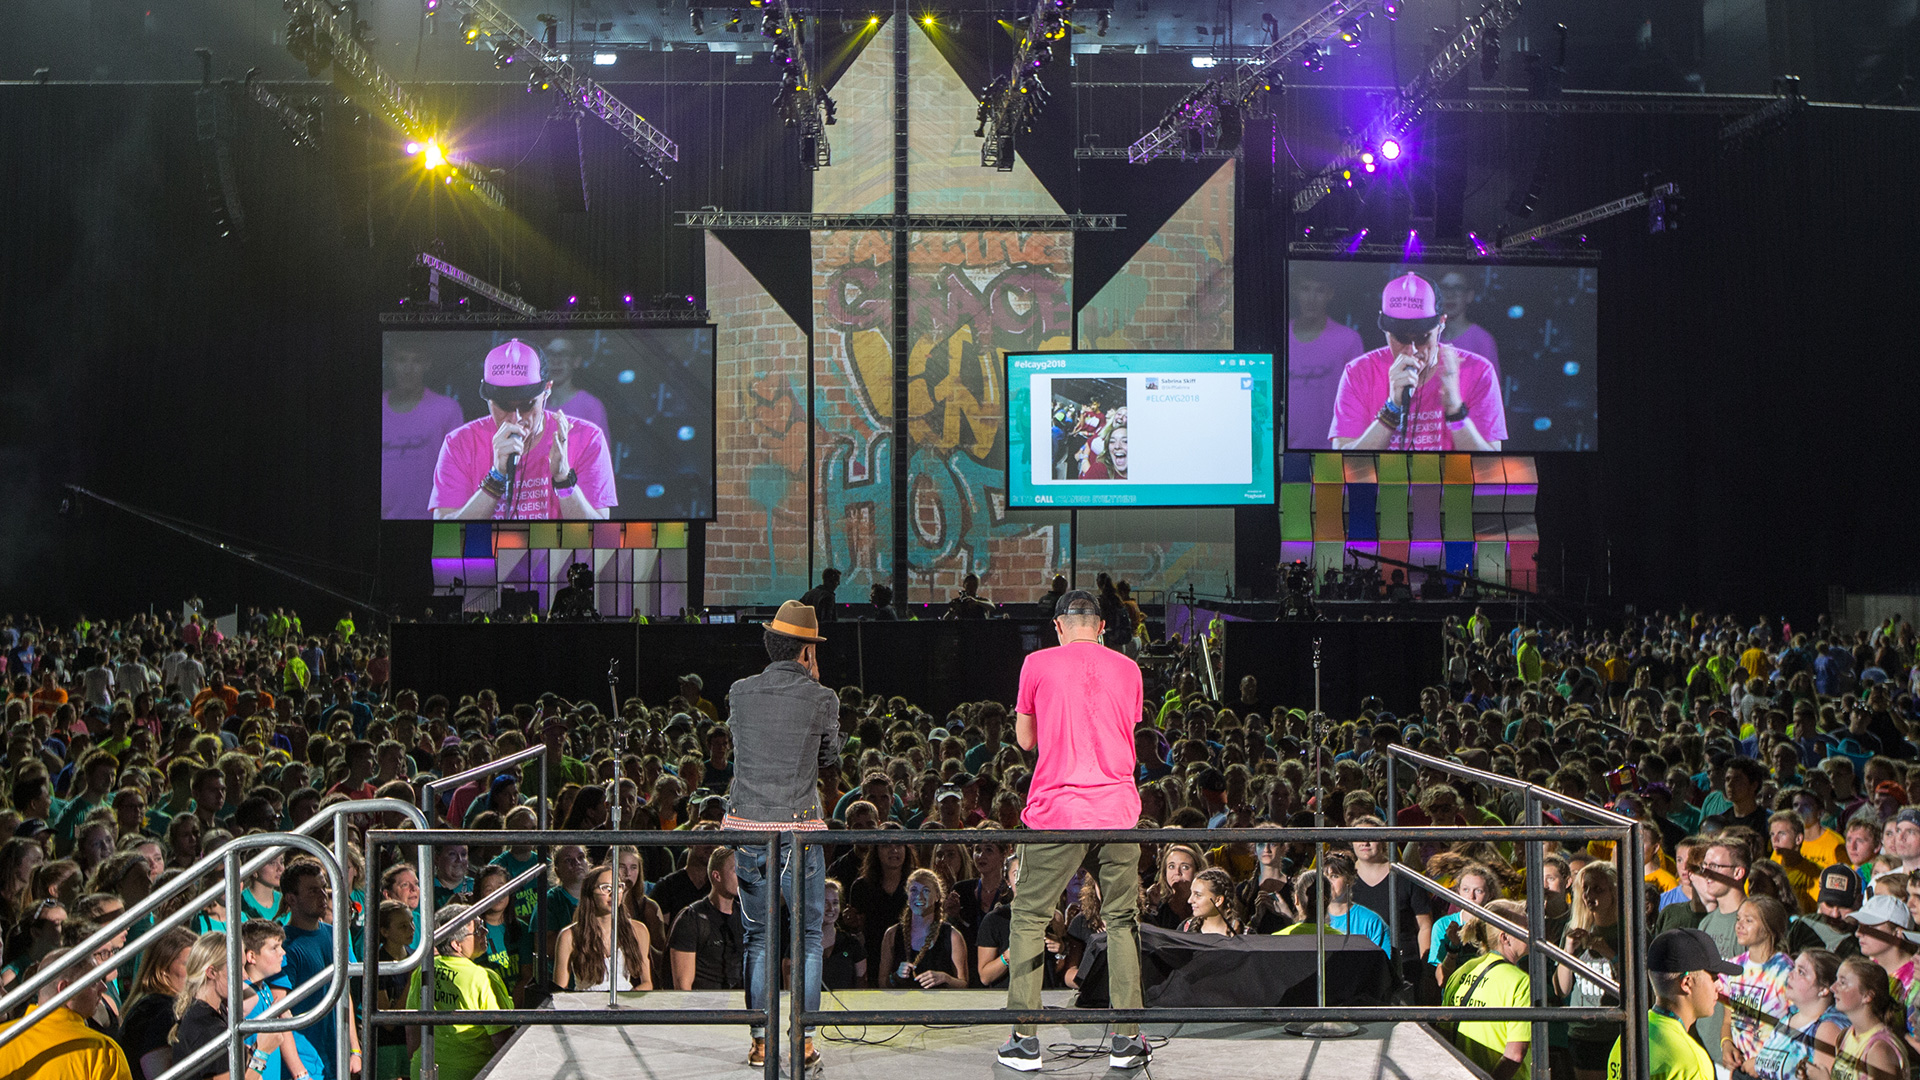 ELCA: Stadium-sized Scale and Spectacle to Captivate a Young Audience